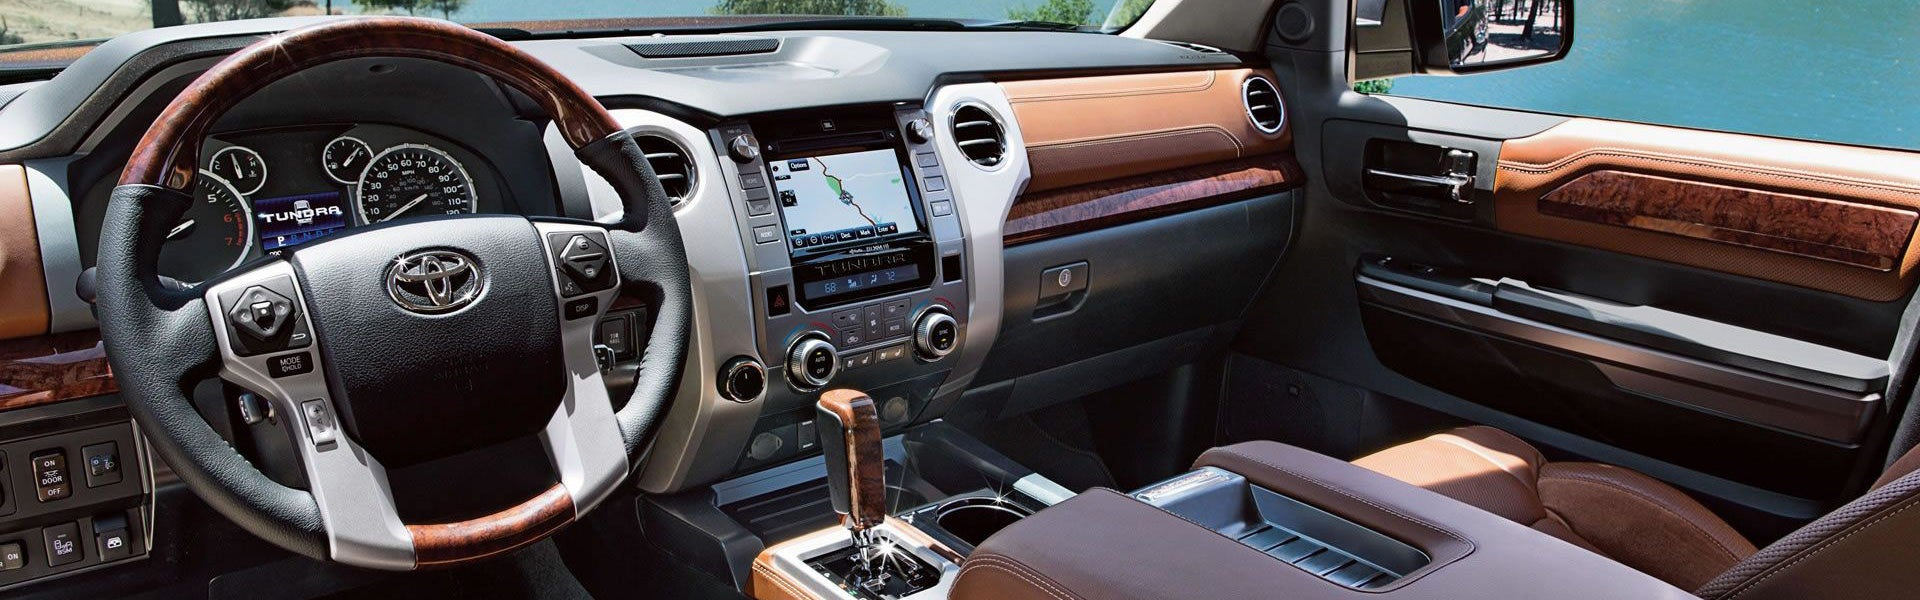 2018 Toyota Tundra | Athens, OH | Don Wood Toyota Dealership